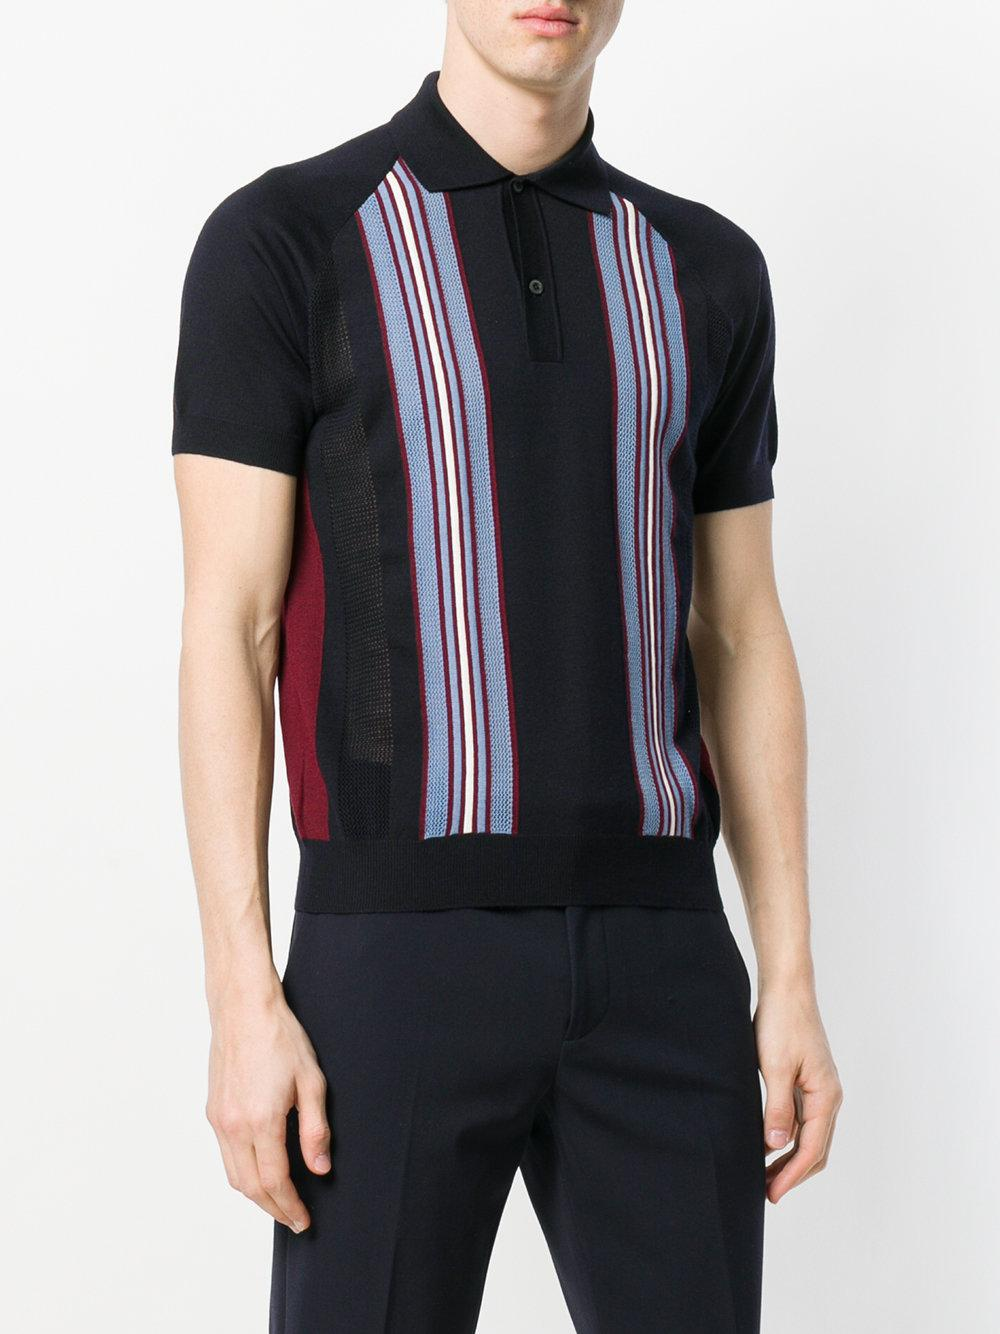 Prada Wool Striped Knitted Polo Shirt in Blue for Men